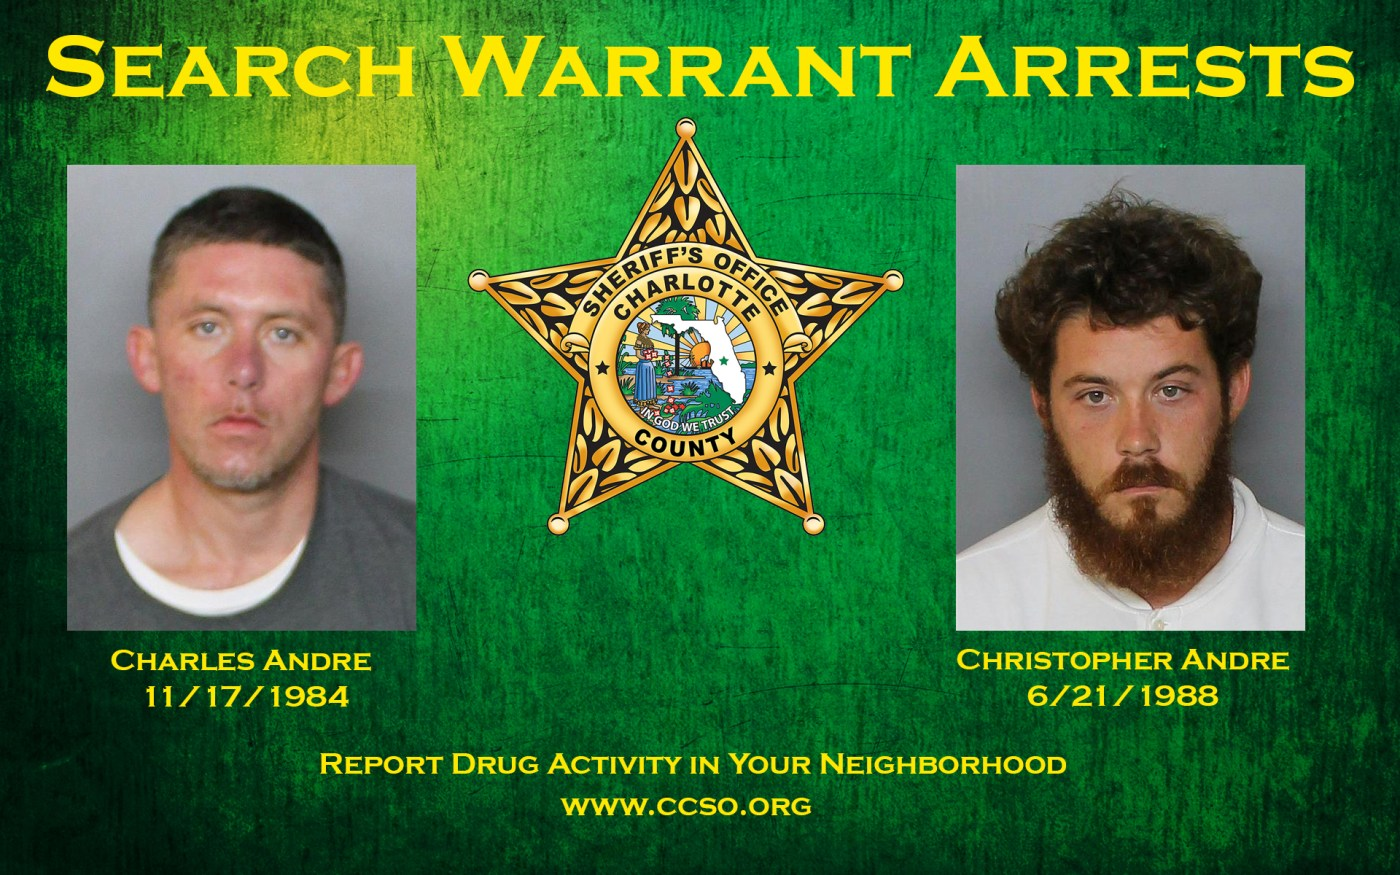 Two Overdoses Lead to Search Warrant